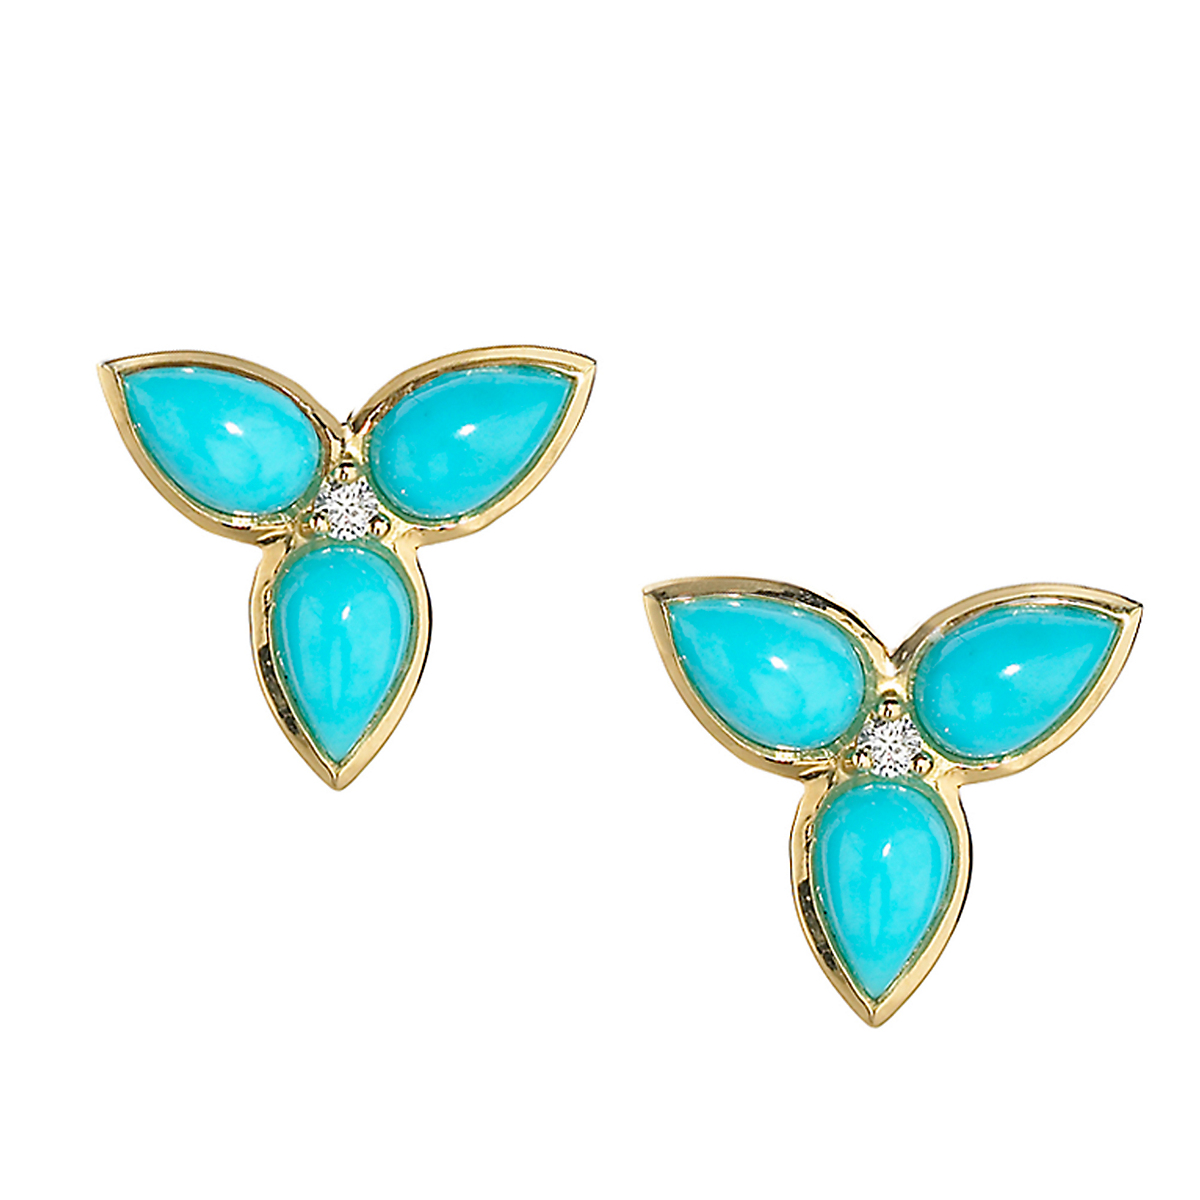 Elizabeth Showers Turquoise & Diamond Mini Mariposa Earrings